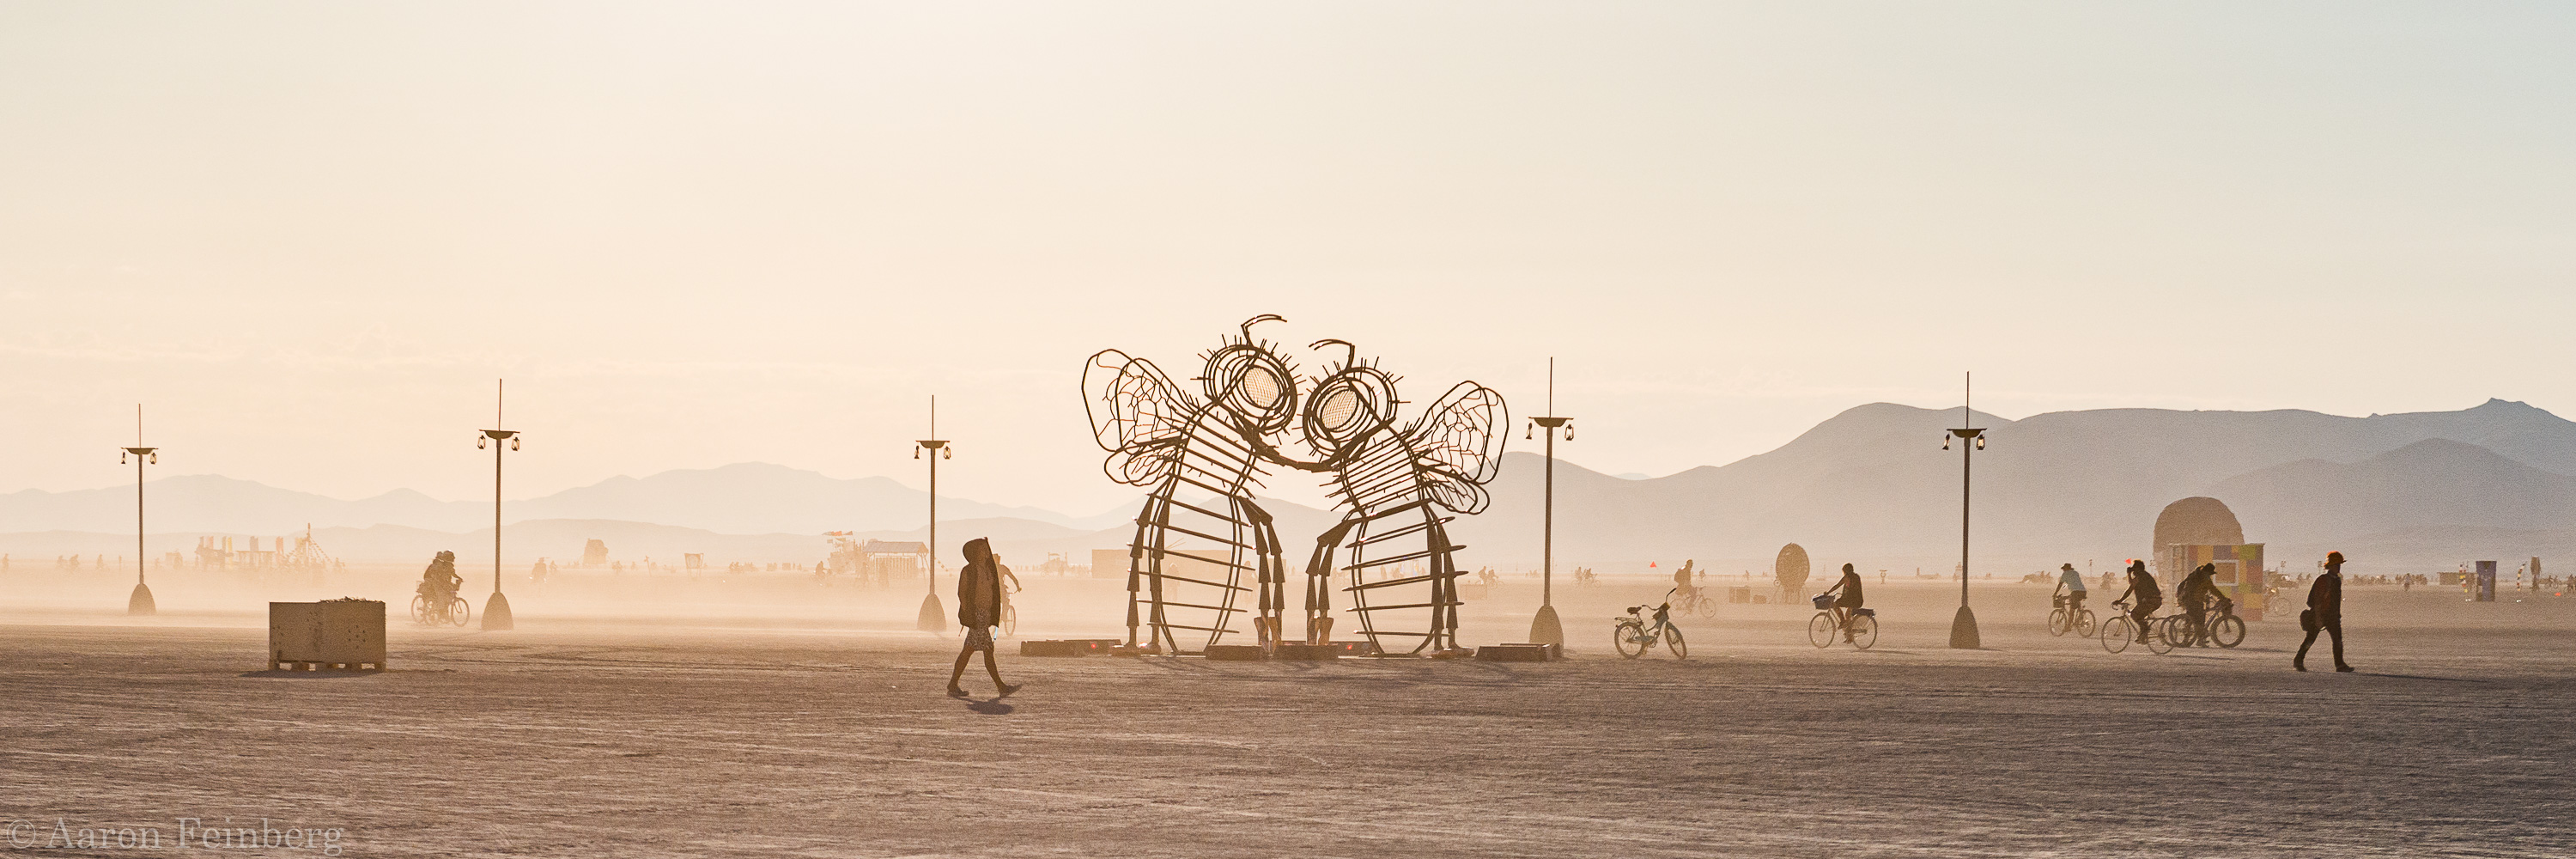 Aaron Feinberg, black rock city, brc, burning man 2019, playa, photo